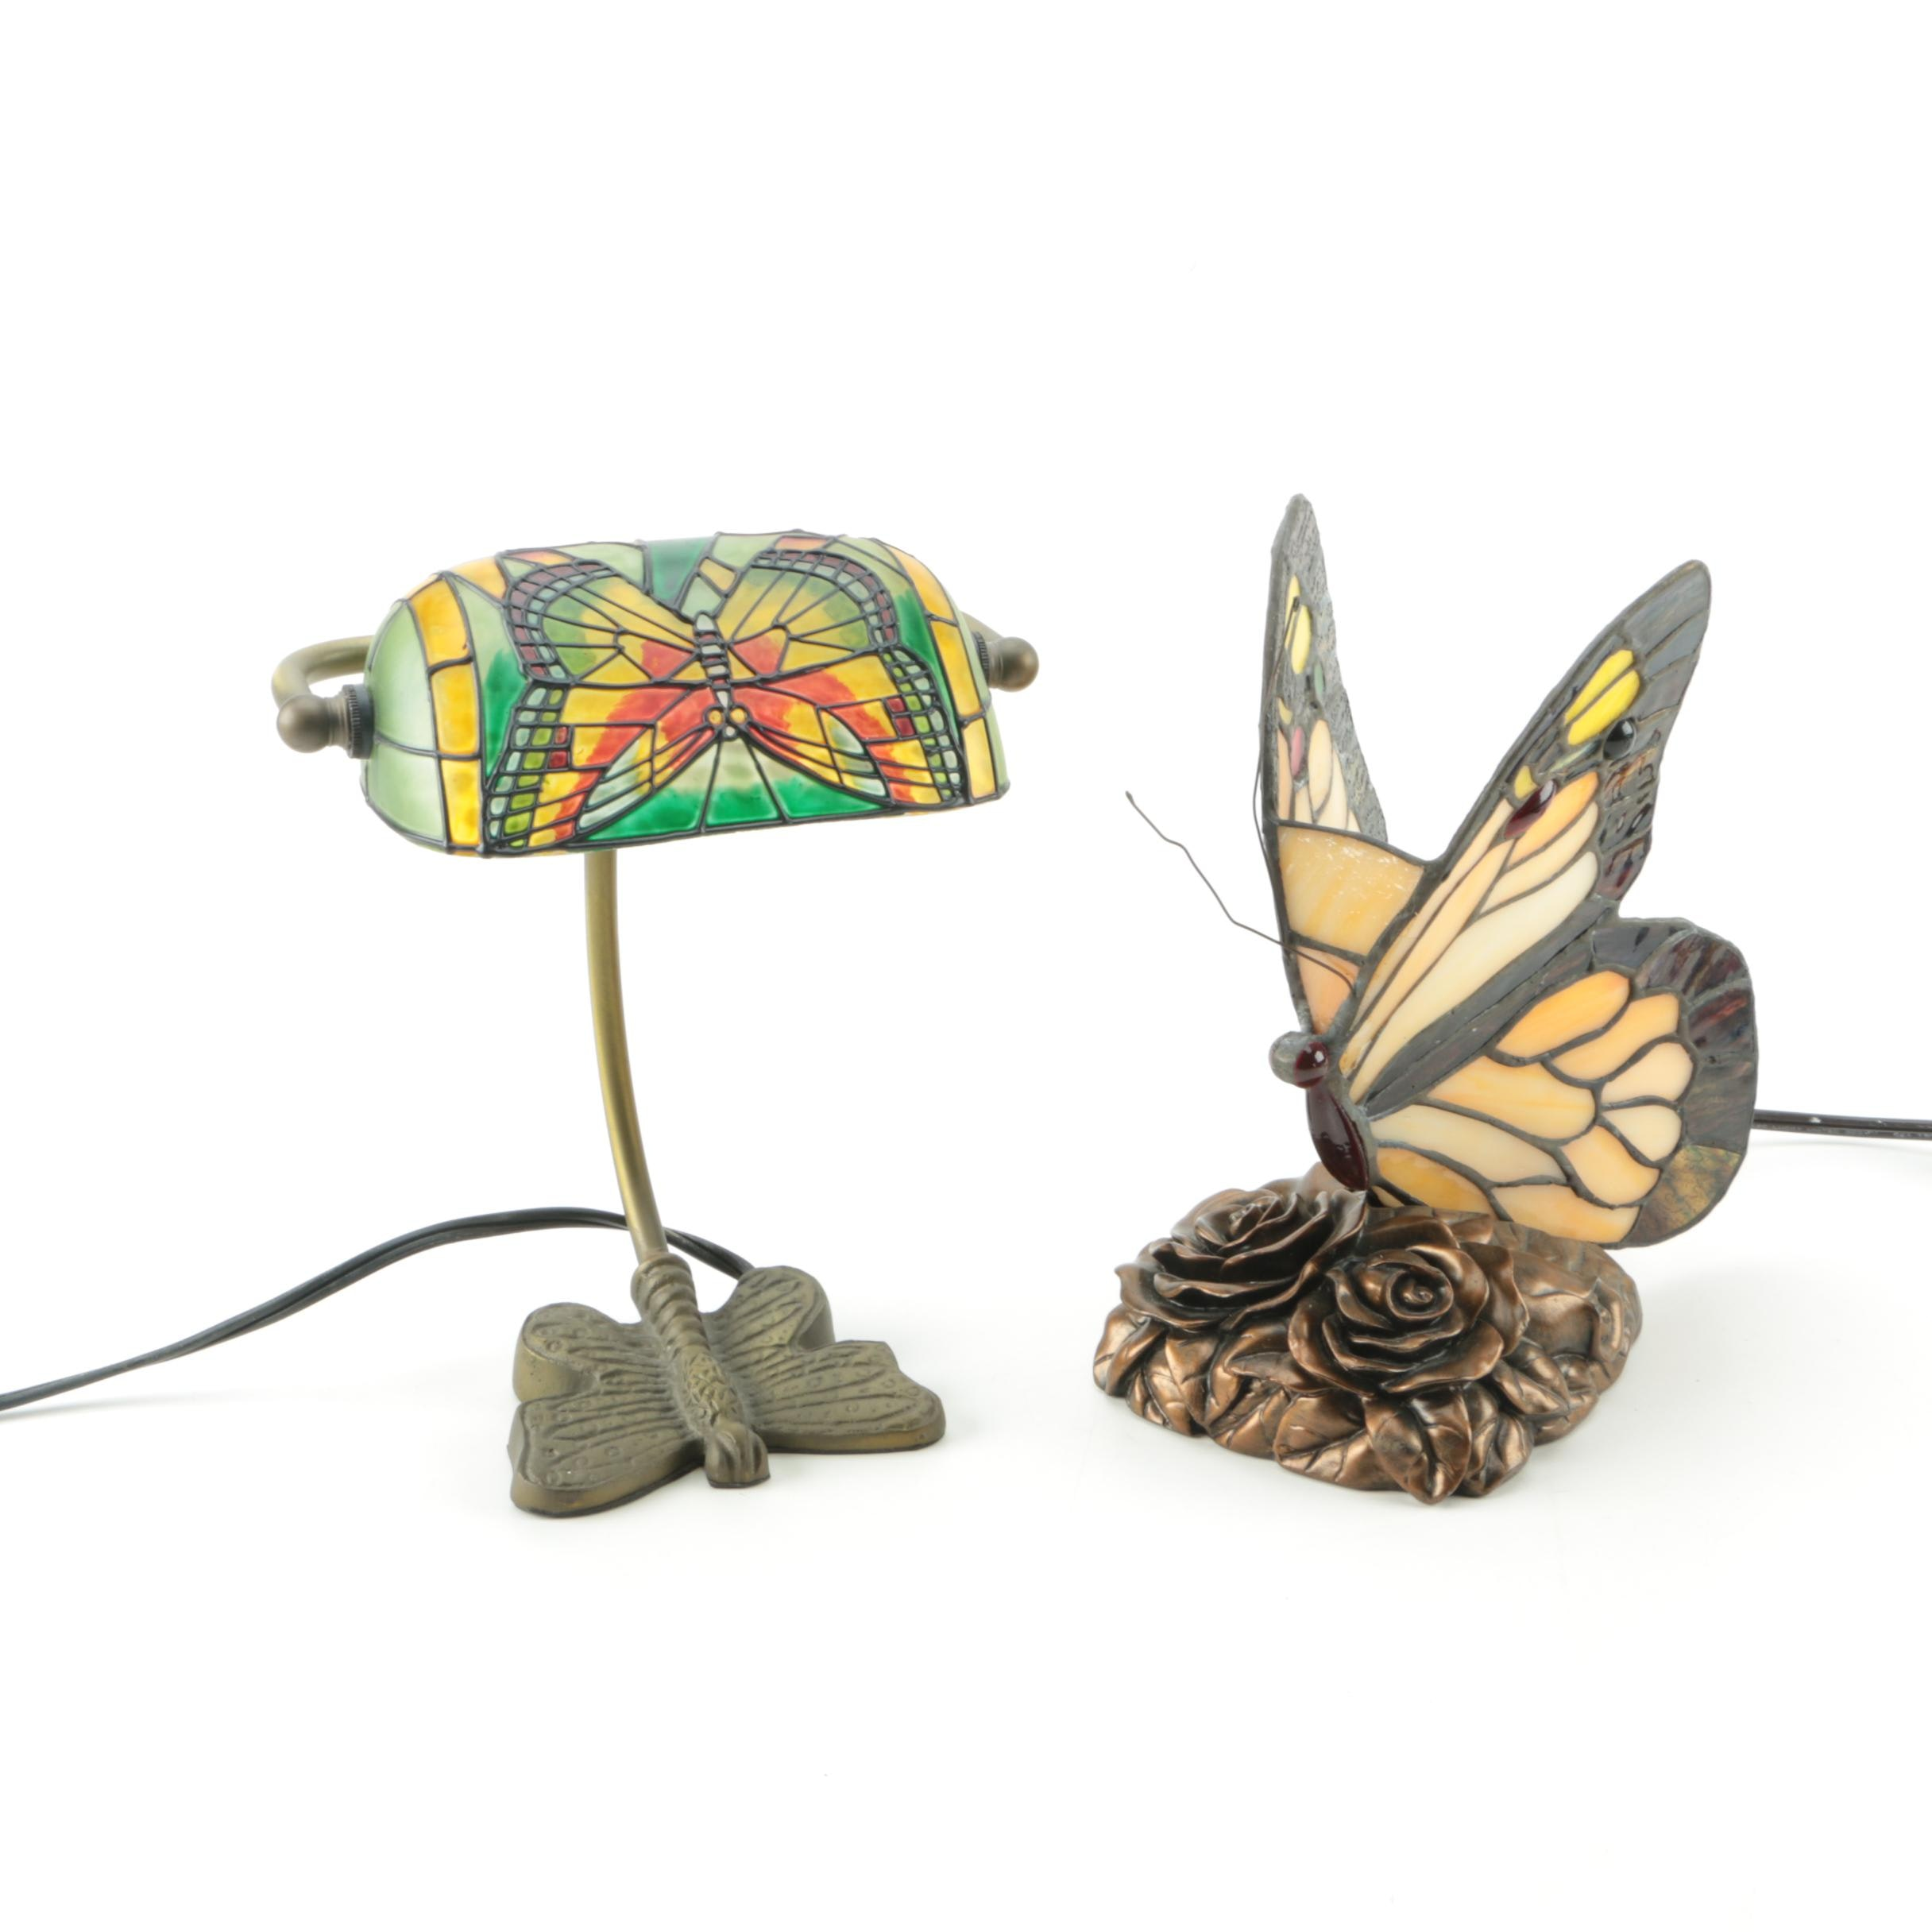 Pair of Tiffany Style Butterfly Desk Lamps